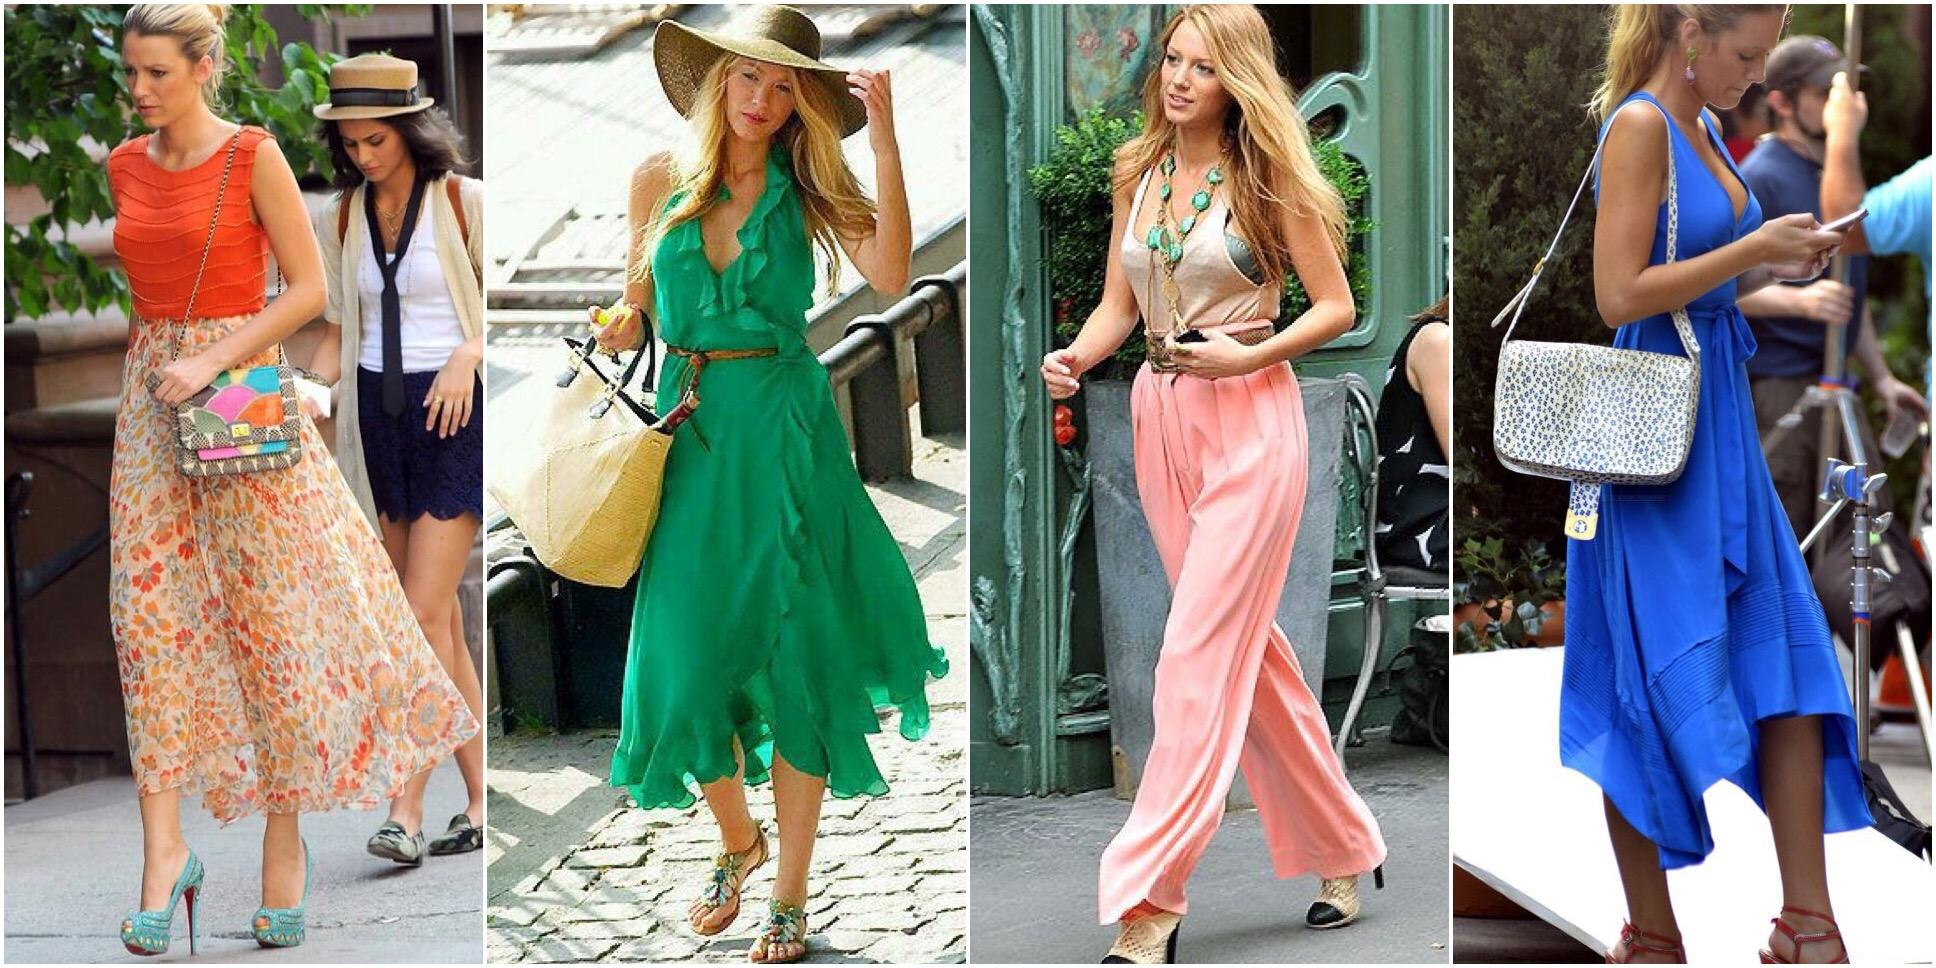 Blake Lively often rocks a version of YangN similar to the Urban Muse. And while it's impossible to know her exact season through photos, it seems likely she's a Spring as well.